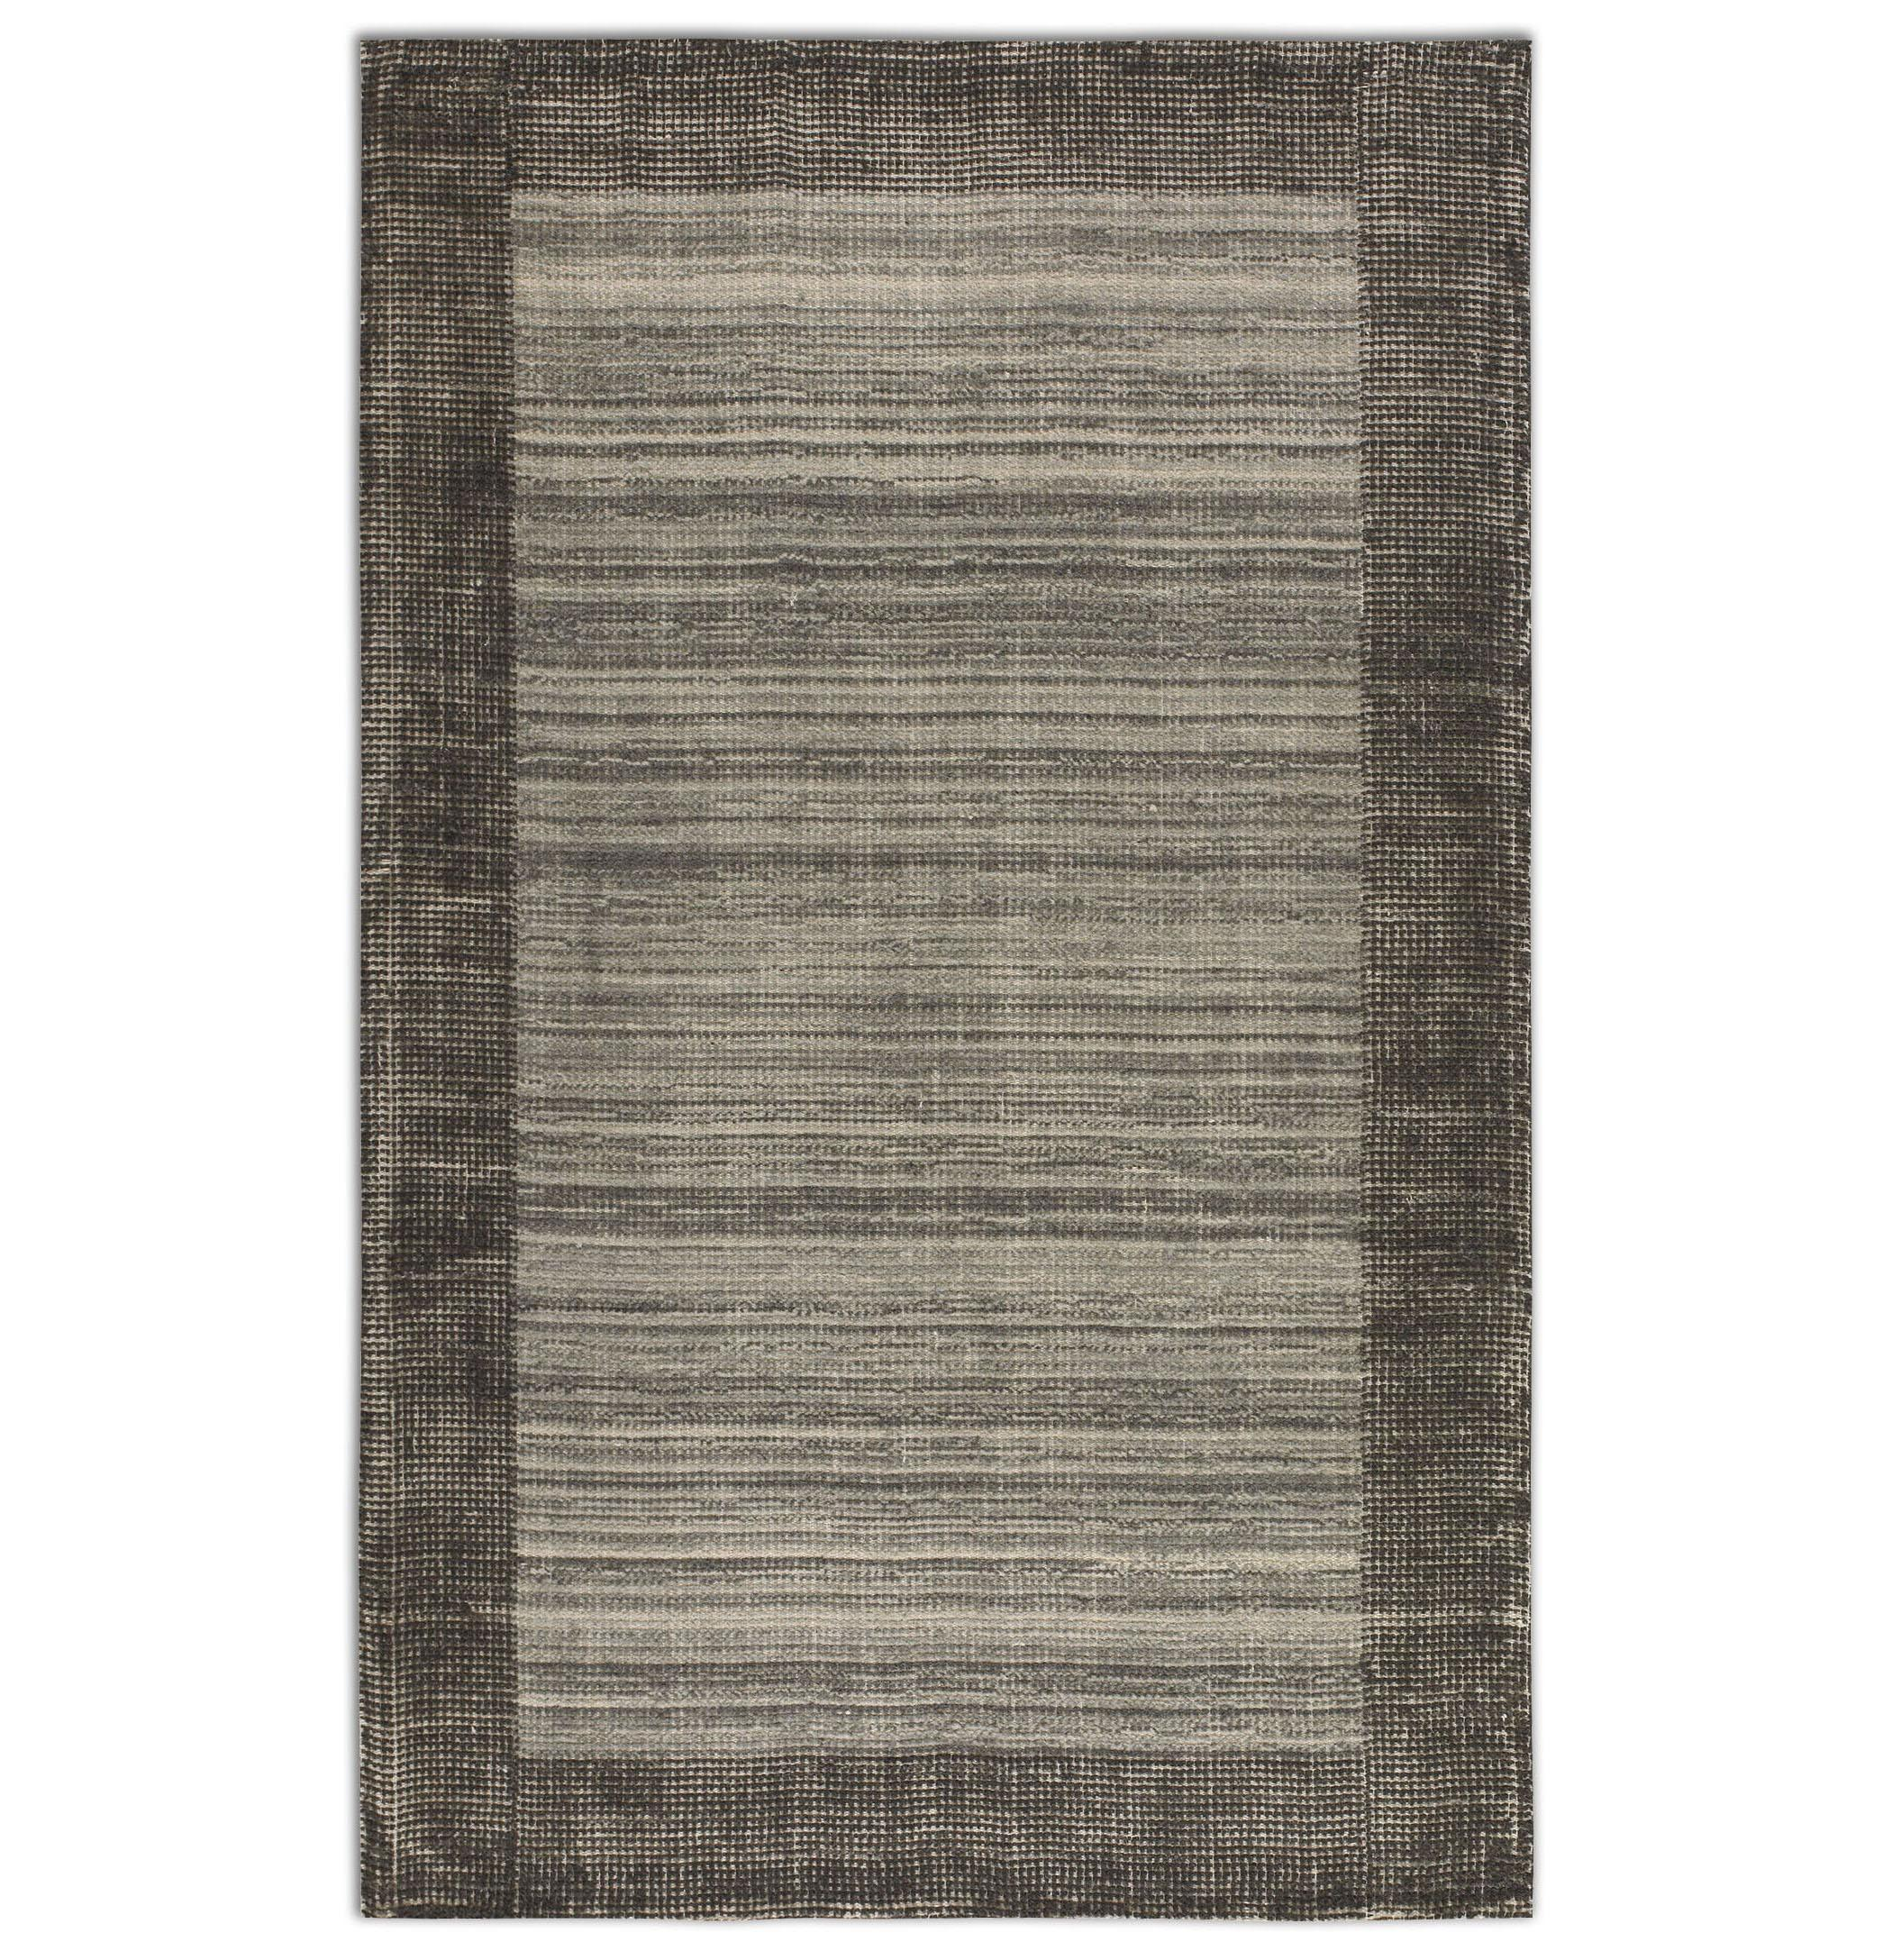 Uttermost Rugs Zell 5 X 8 Rug - Gray - Item Number: 73049-5